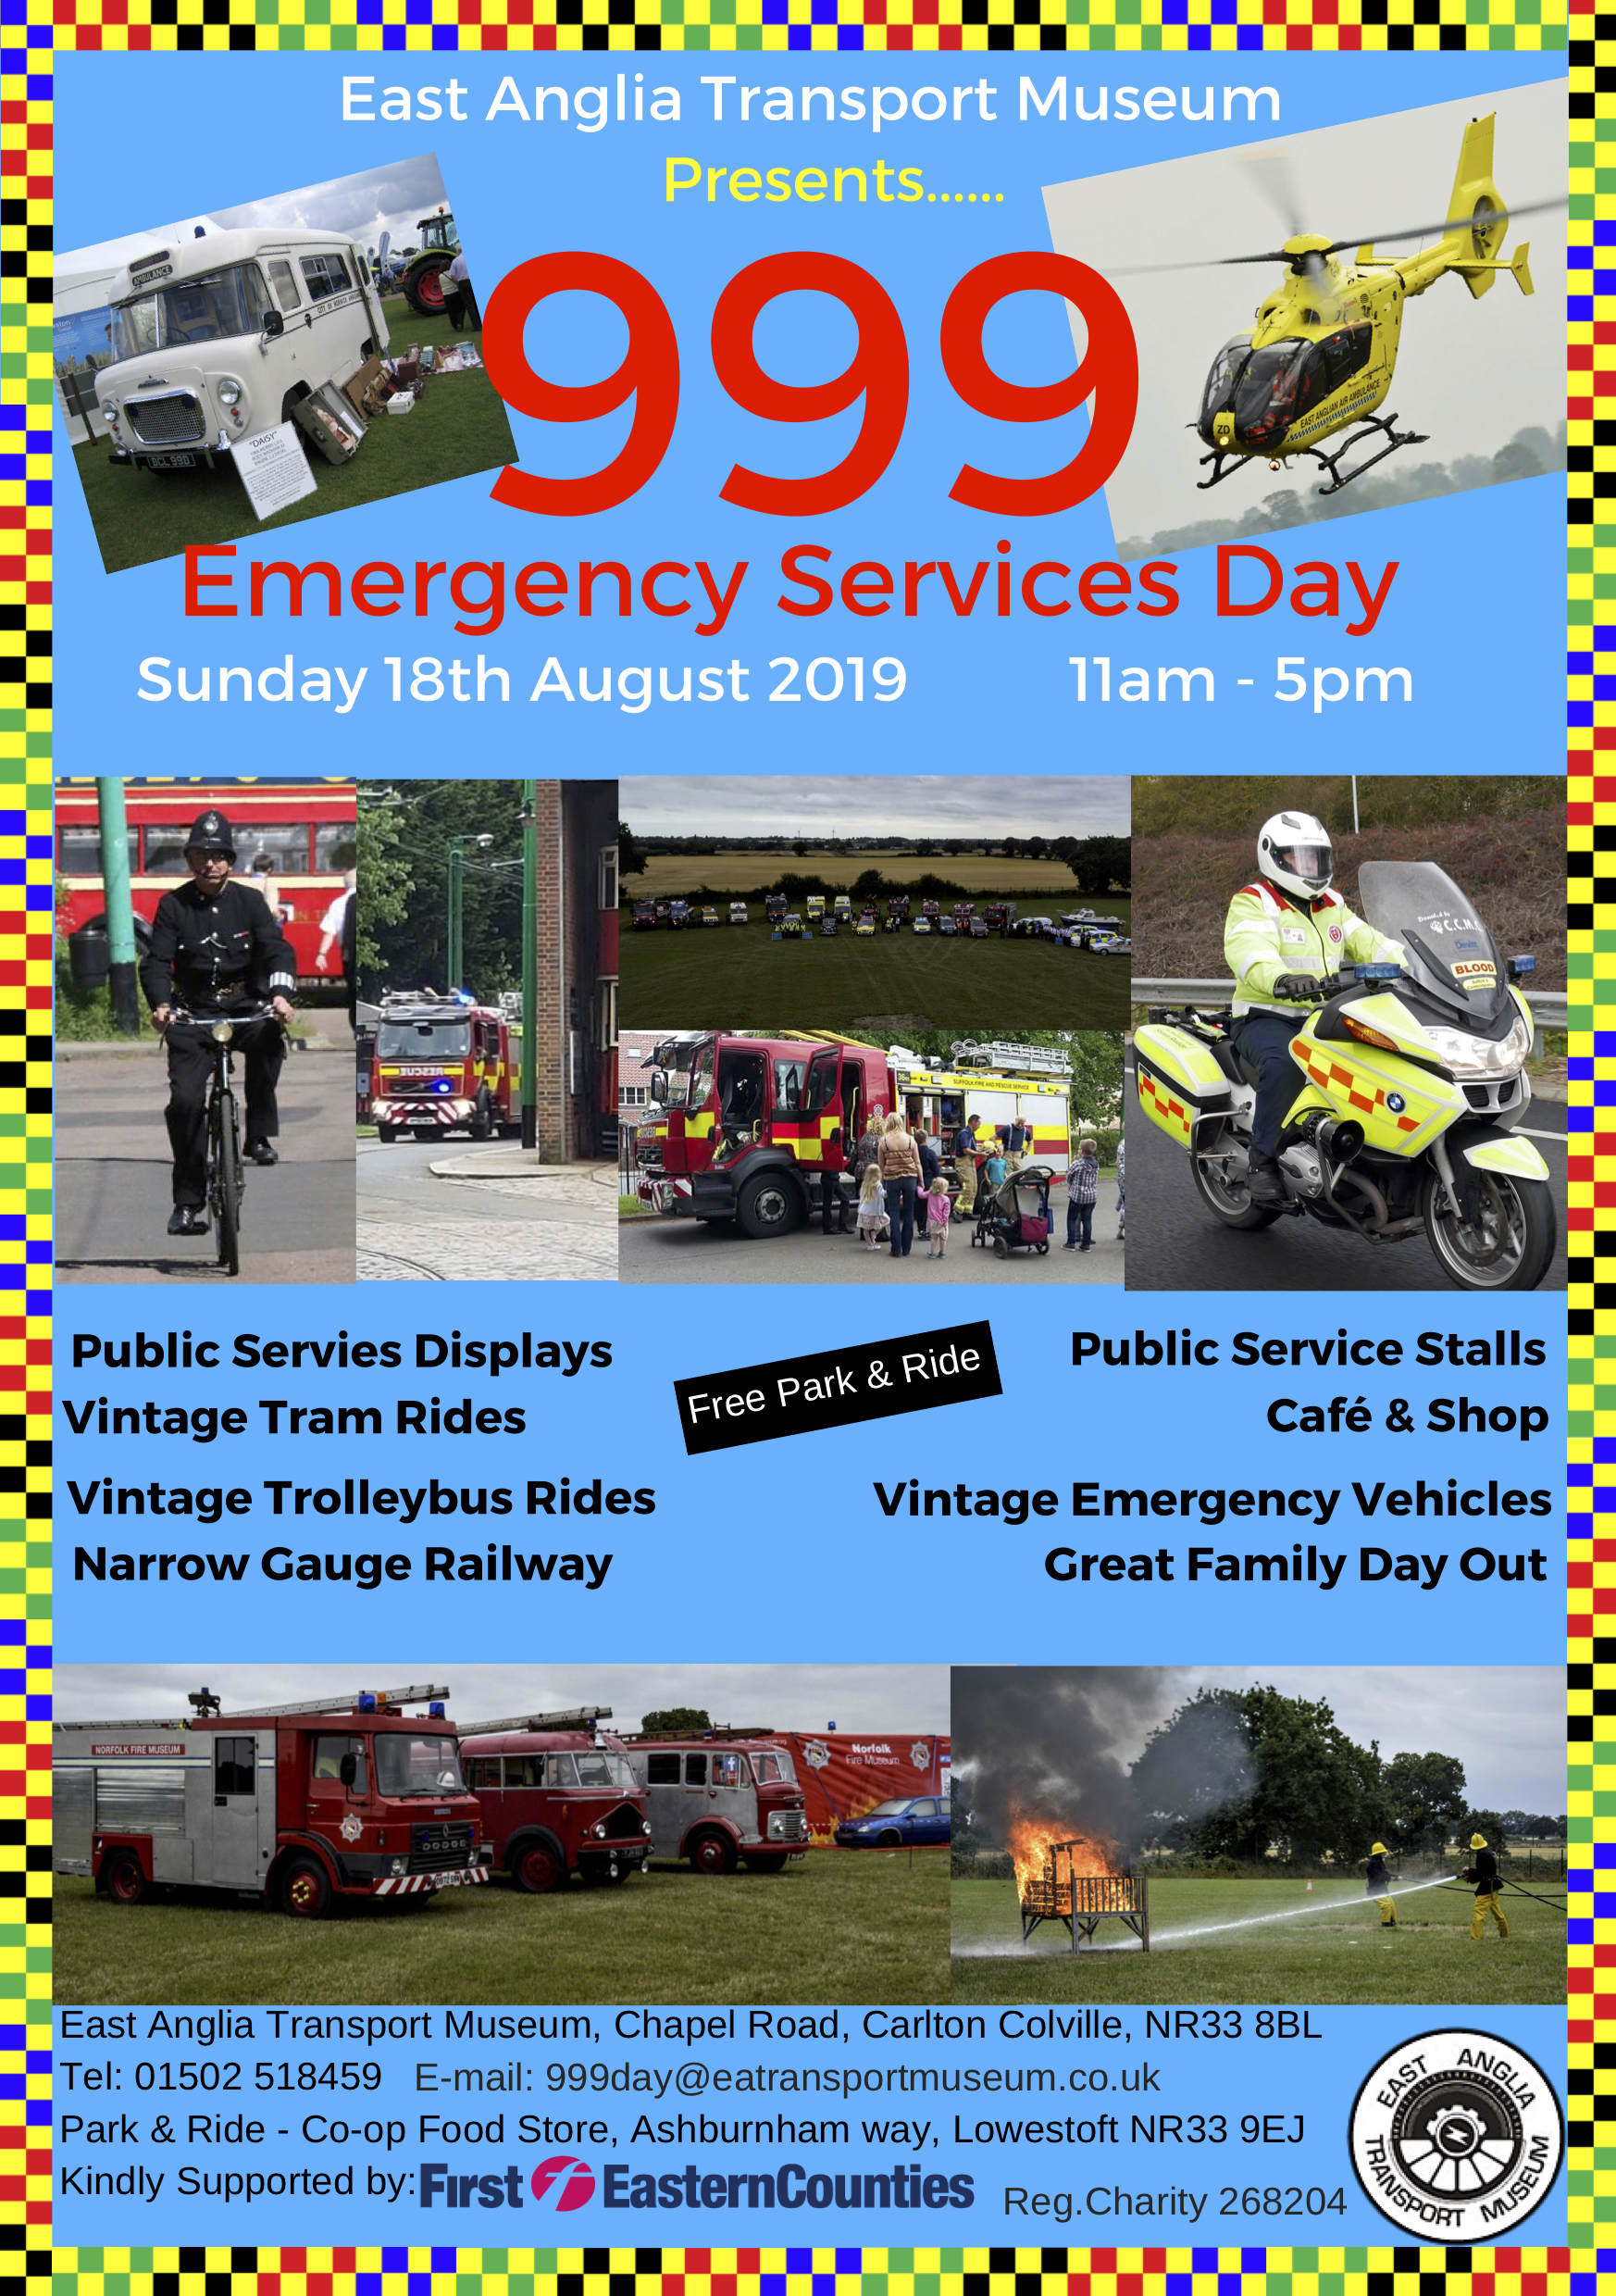 999 Emergency Services Day 2019